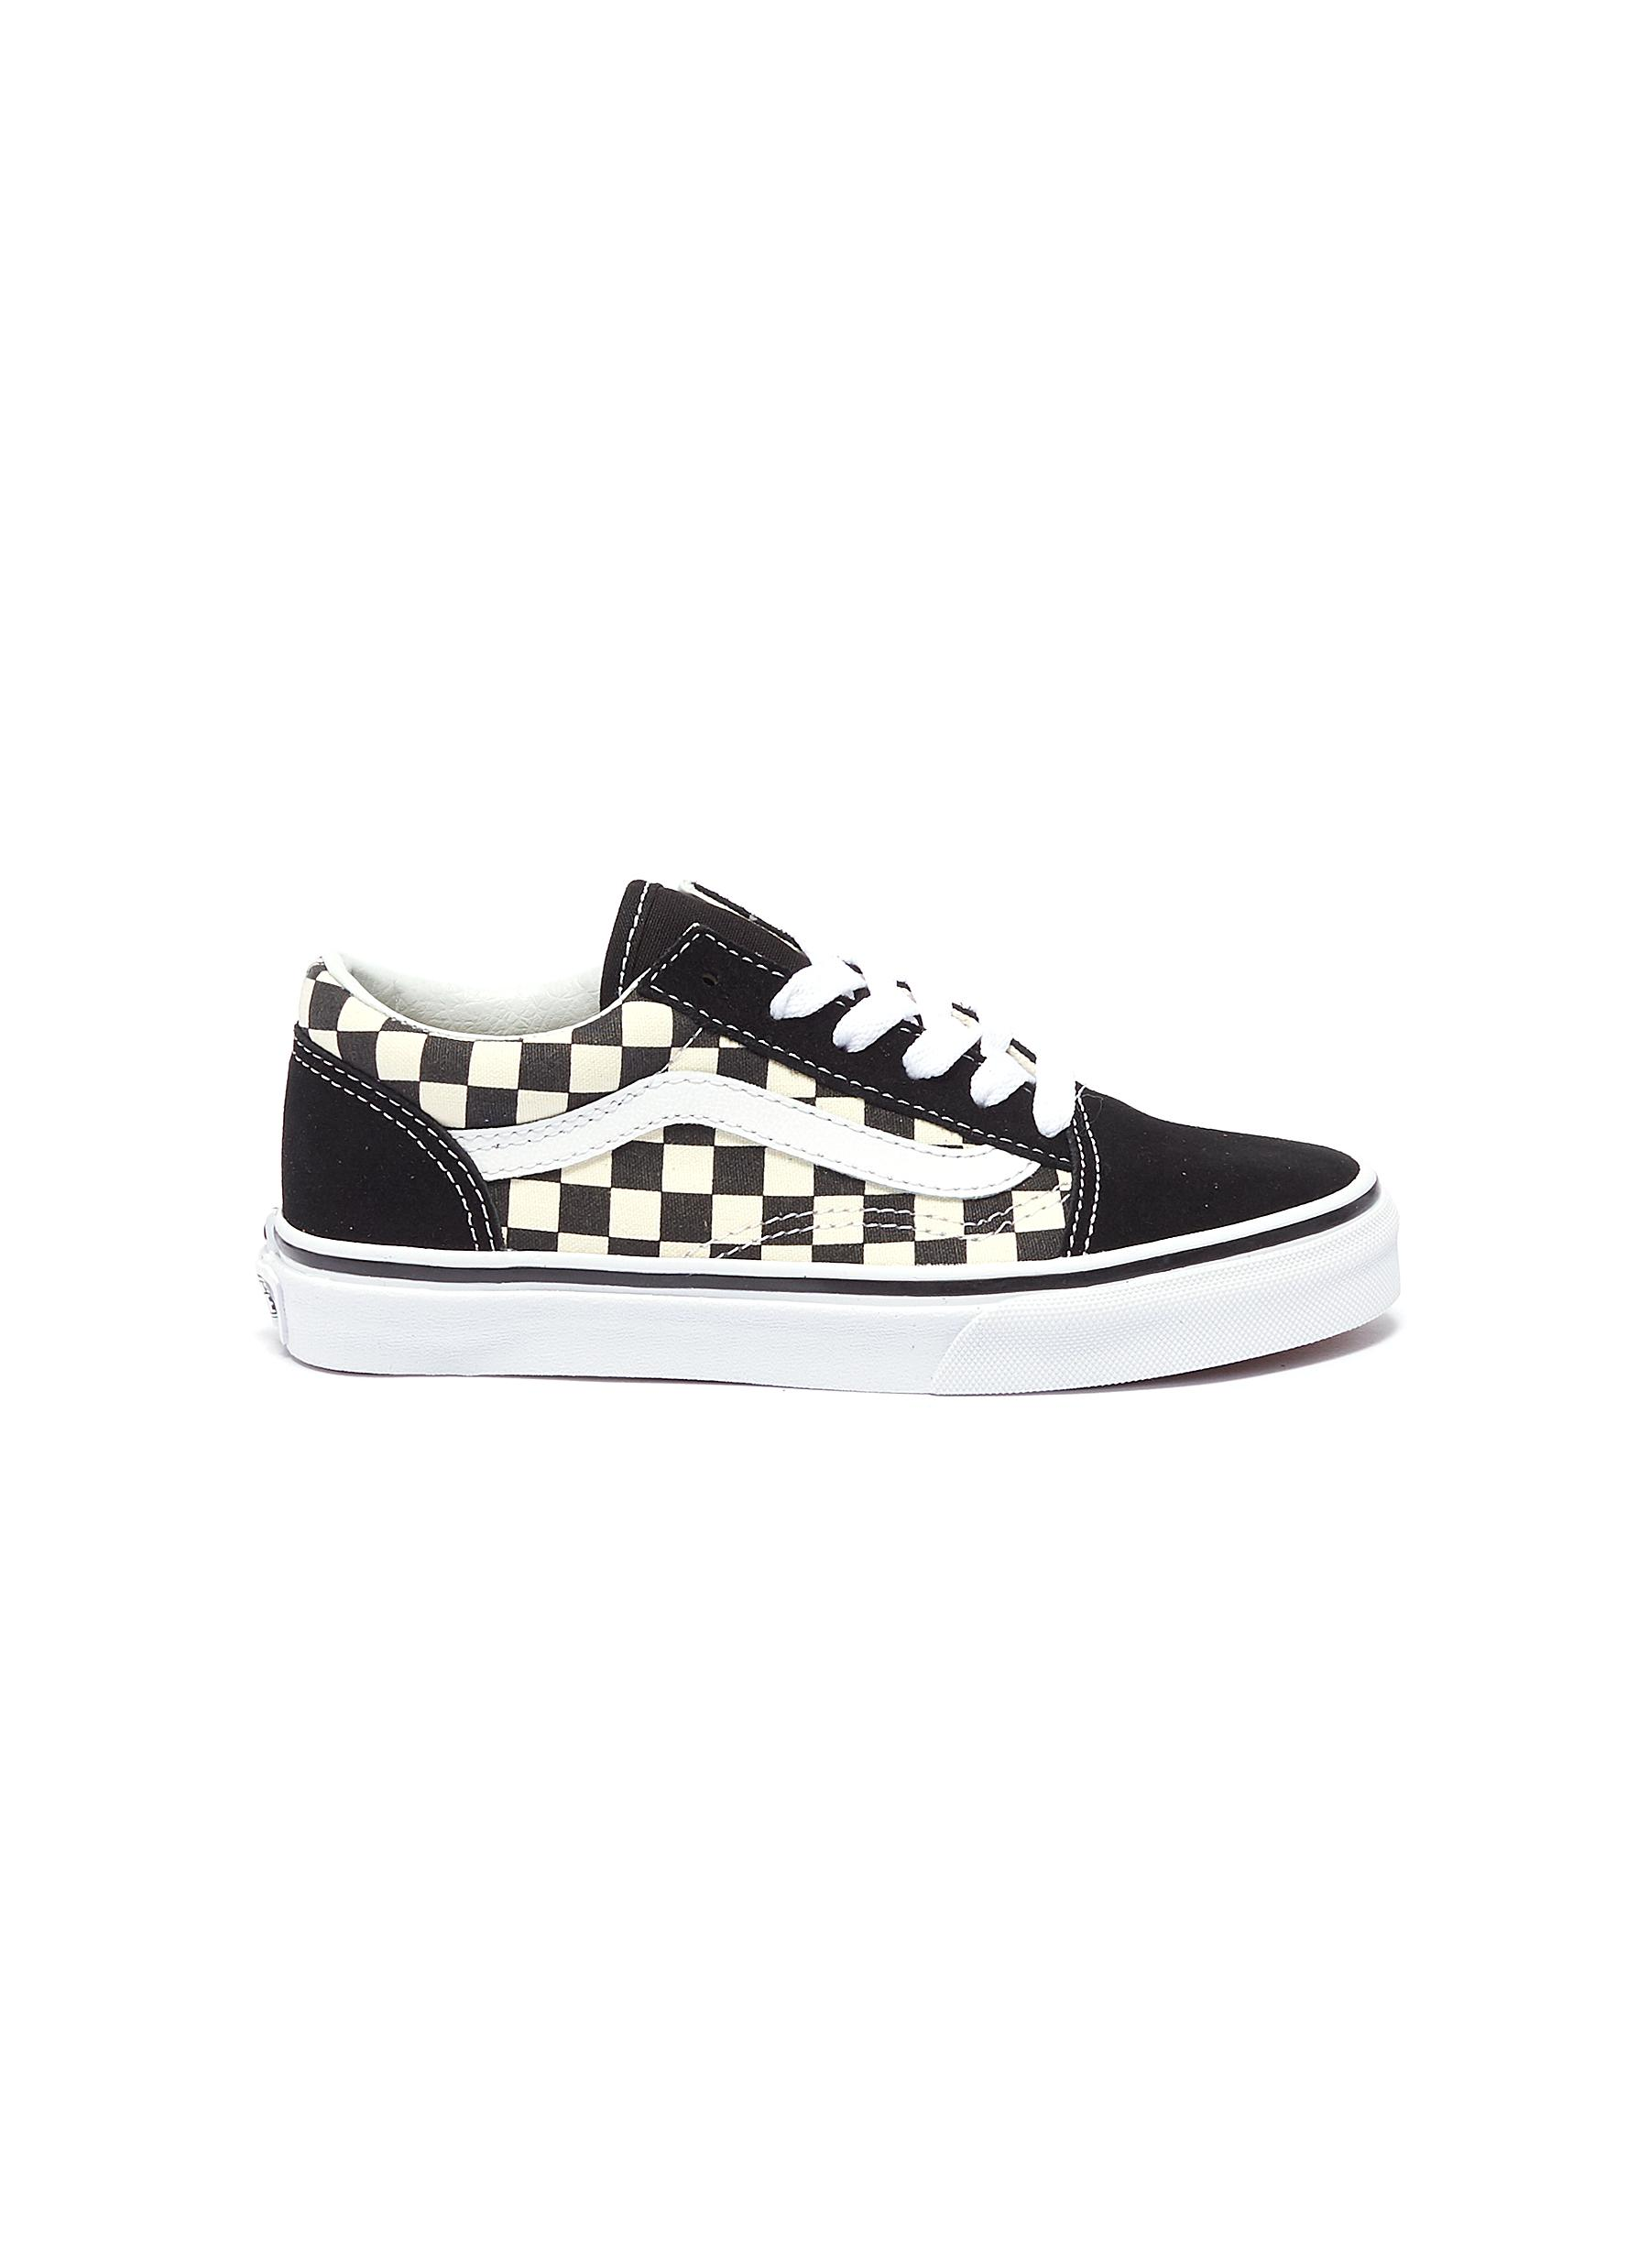 ffbc5a9f569 Main View - Click To Enlarge - Vans -  Old Skool V  checkerboard canvas